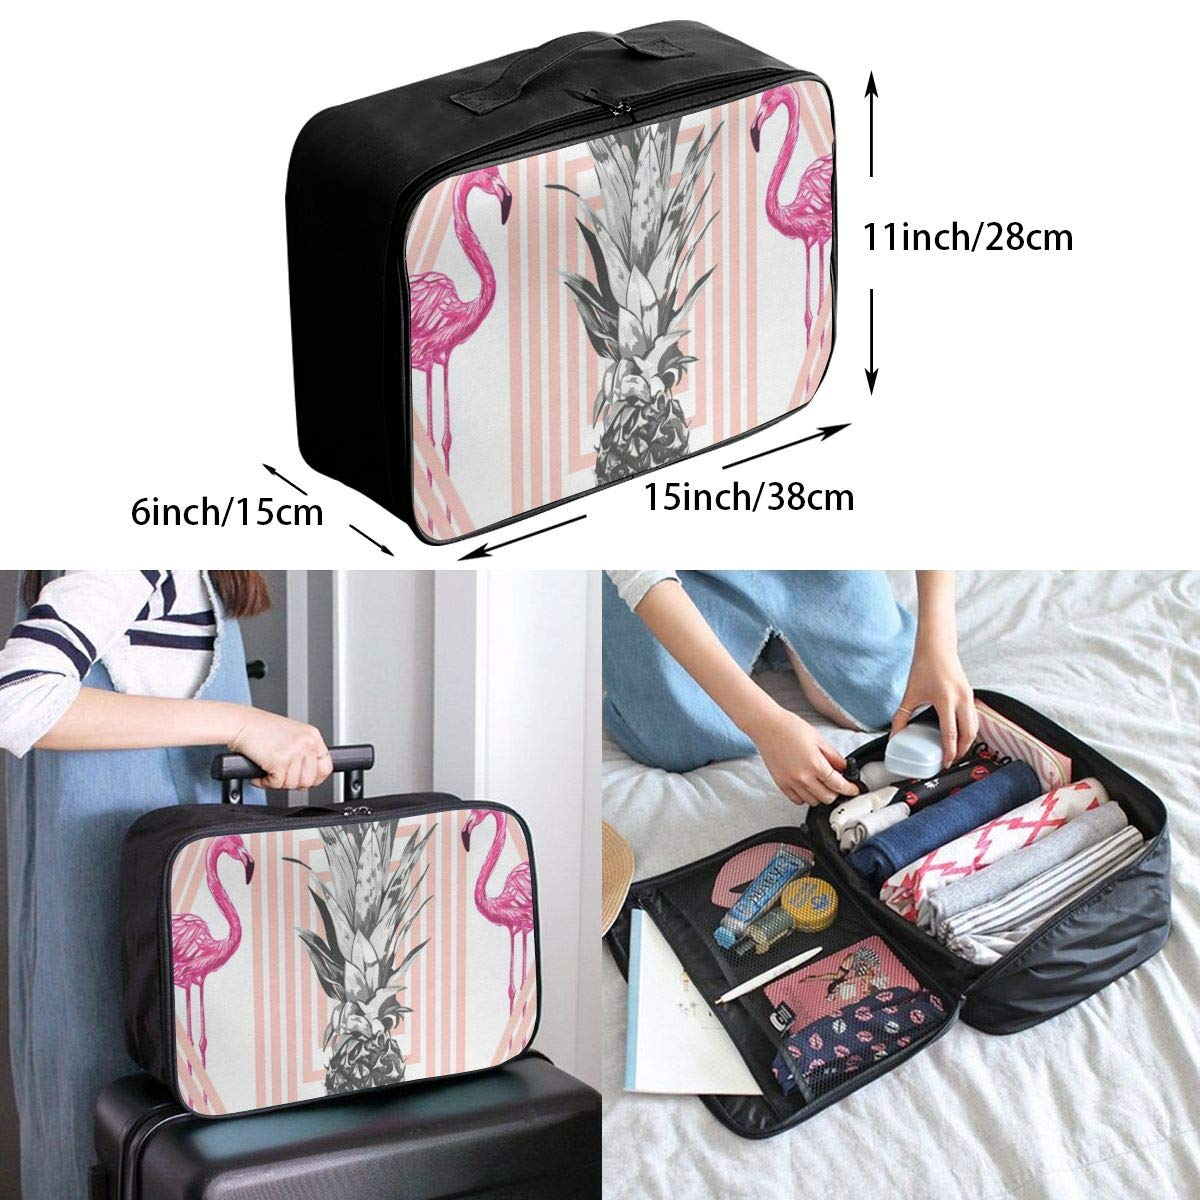 Travel Bags Two Swans Heart Portable Duffel Trolley Handle Luggage Bag